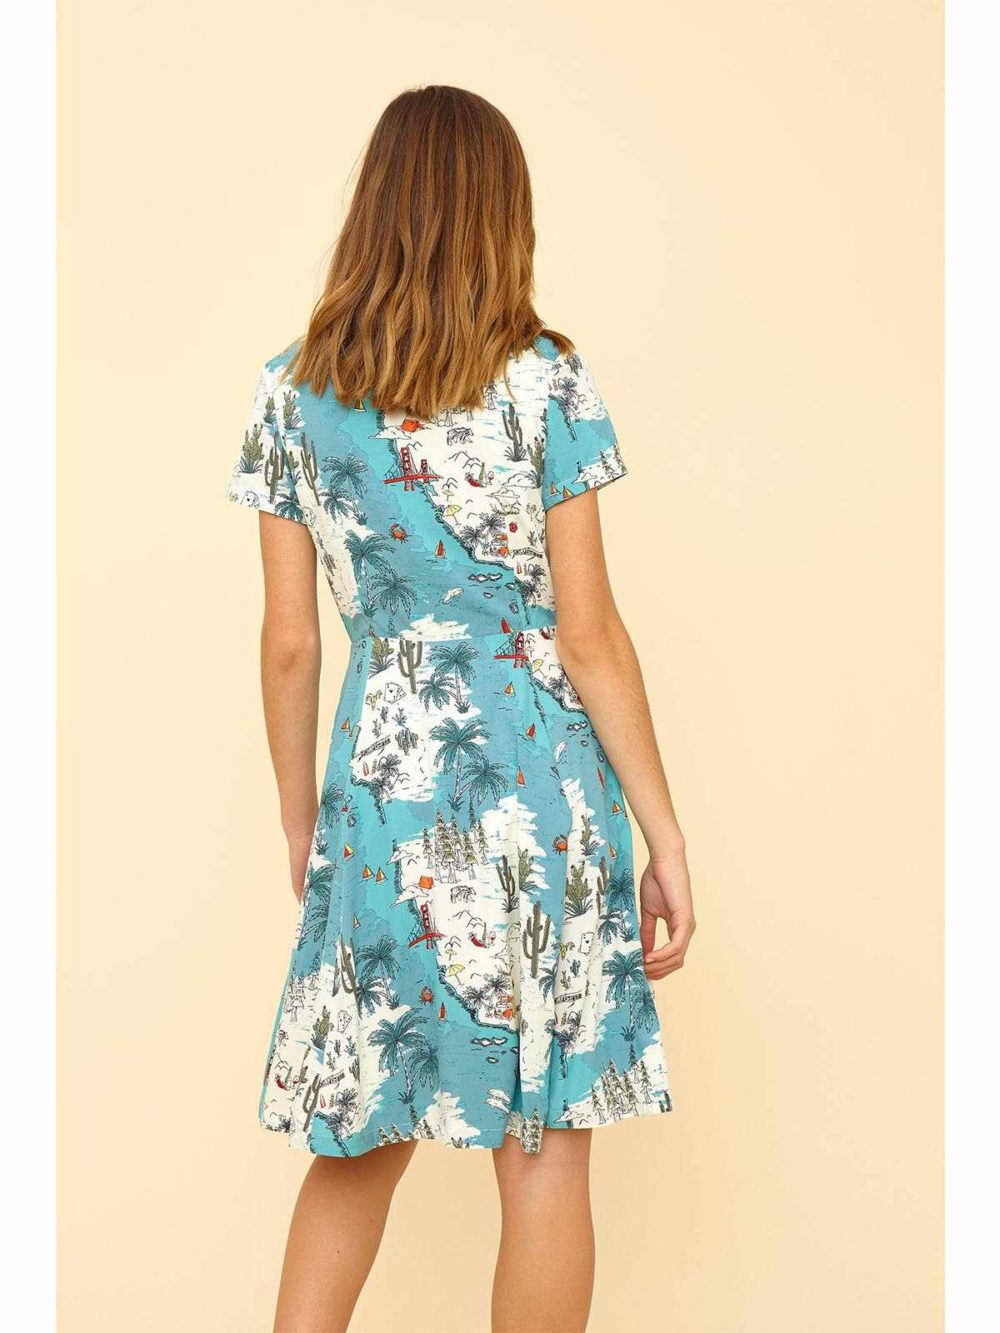 Hailey Dress Emily and Fin Katie Kerr Women's Clothing